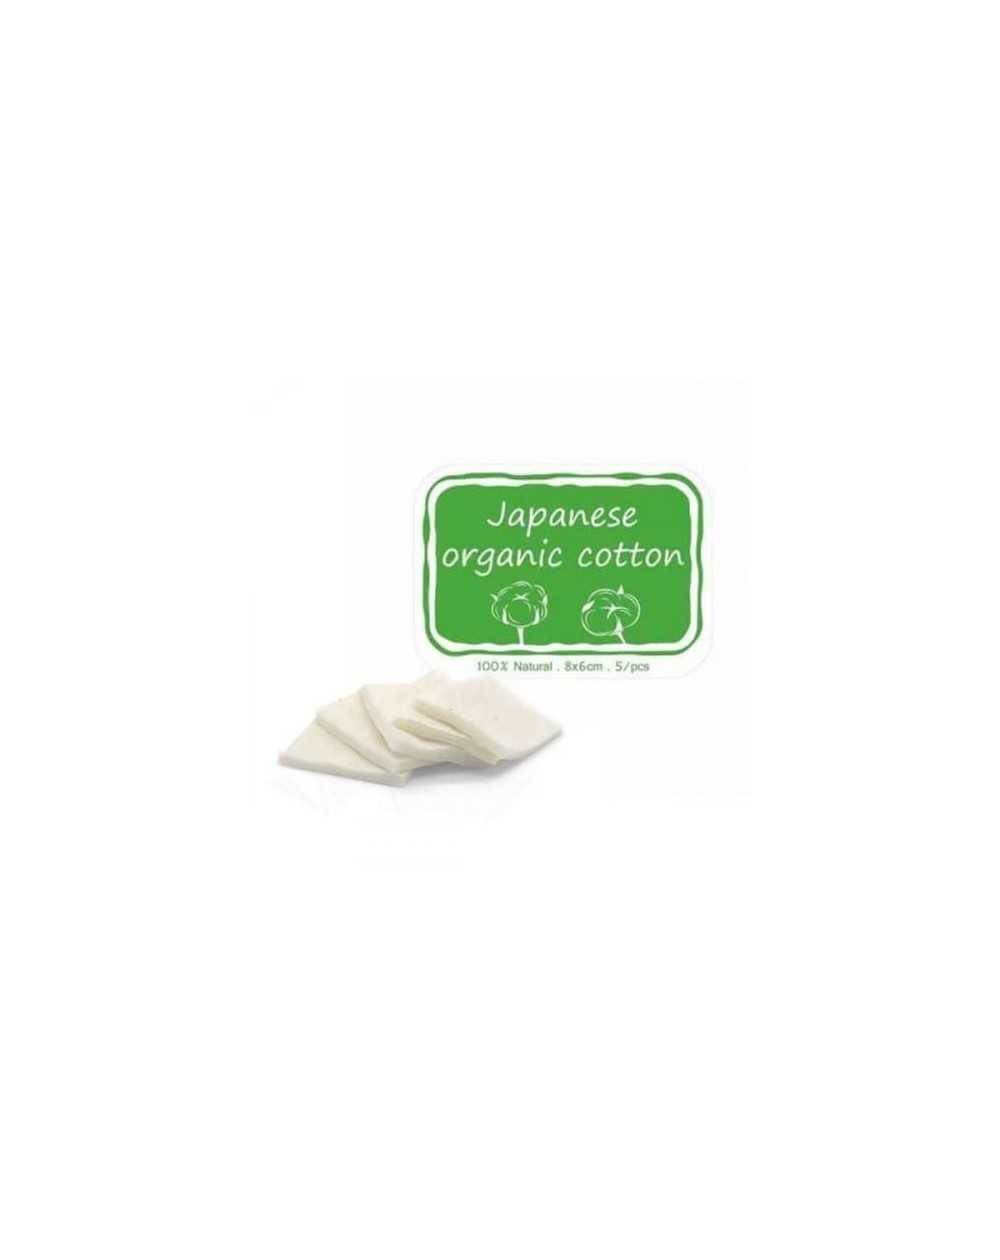 Pack of 5 strips of Japanese organic cotton-1